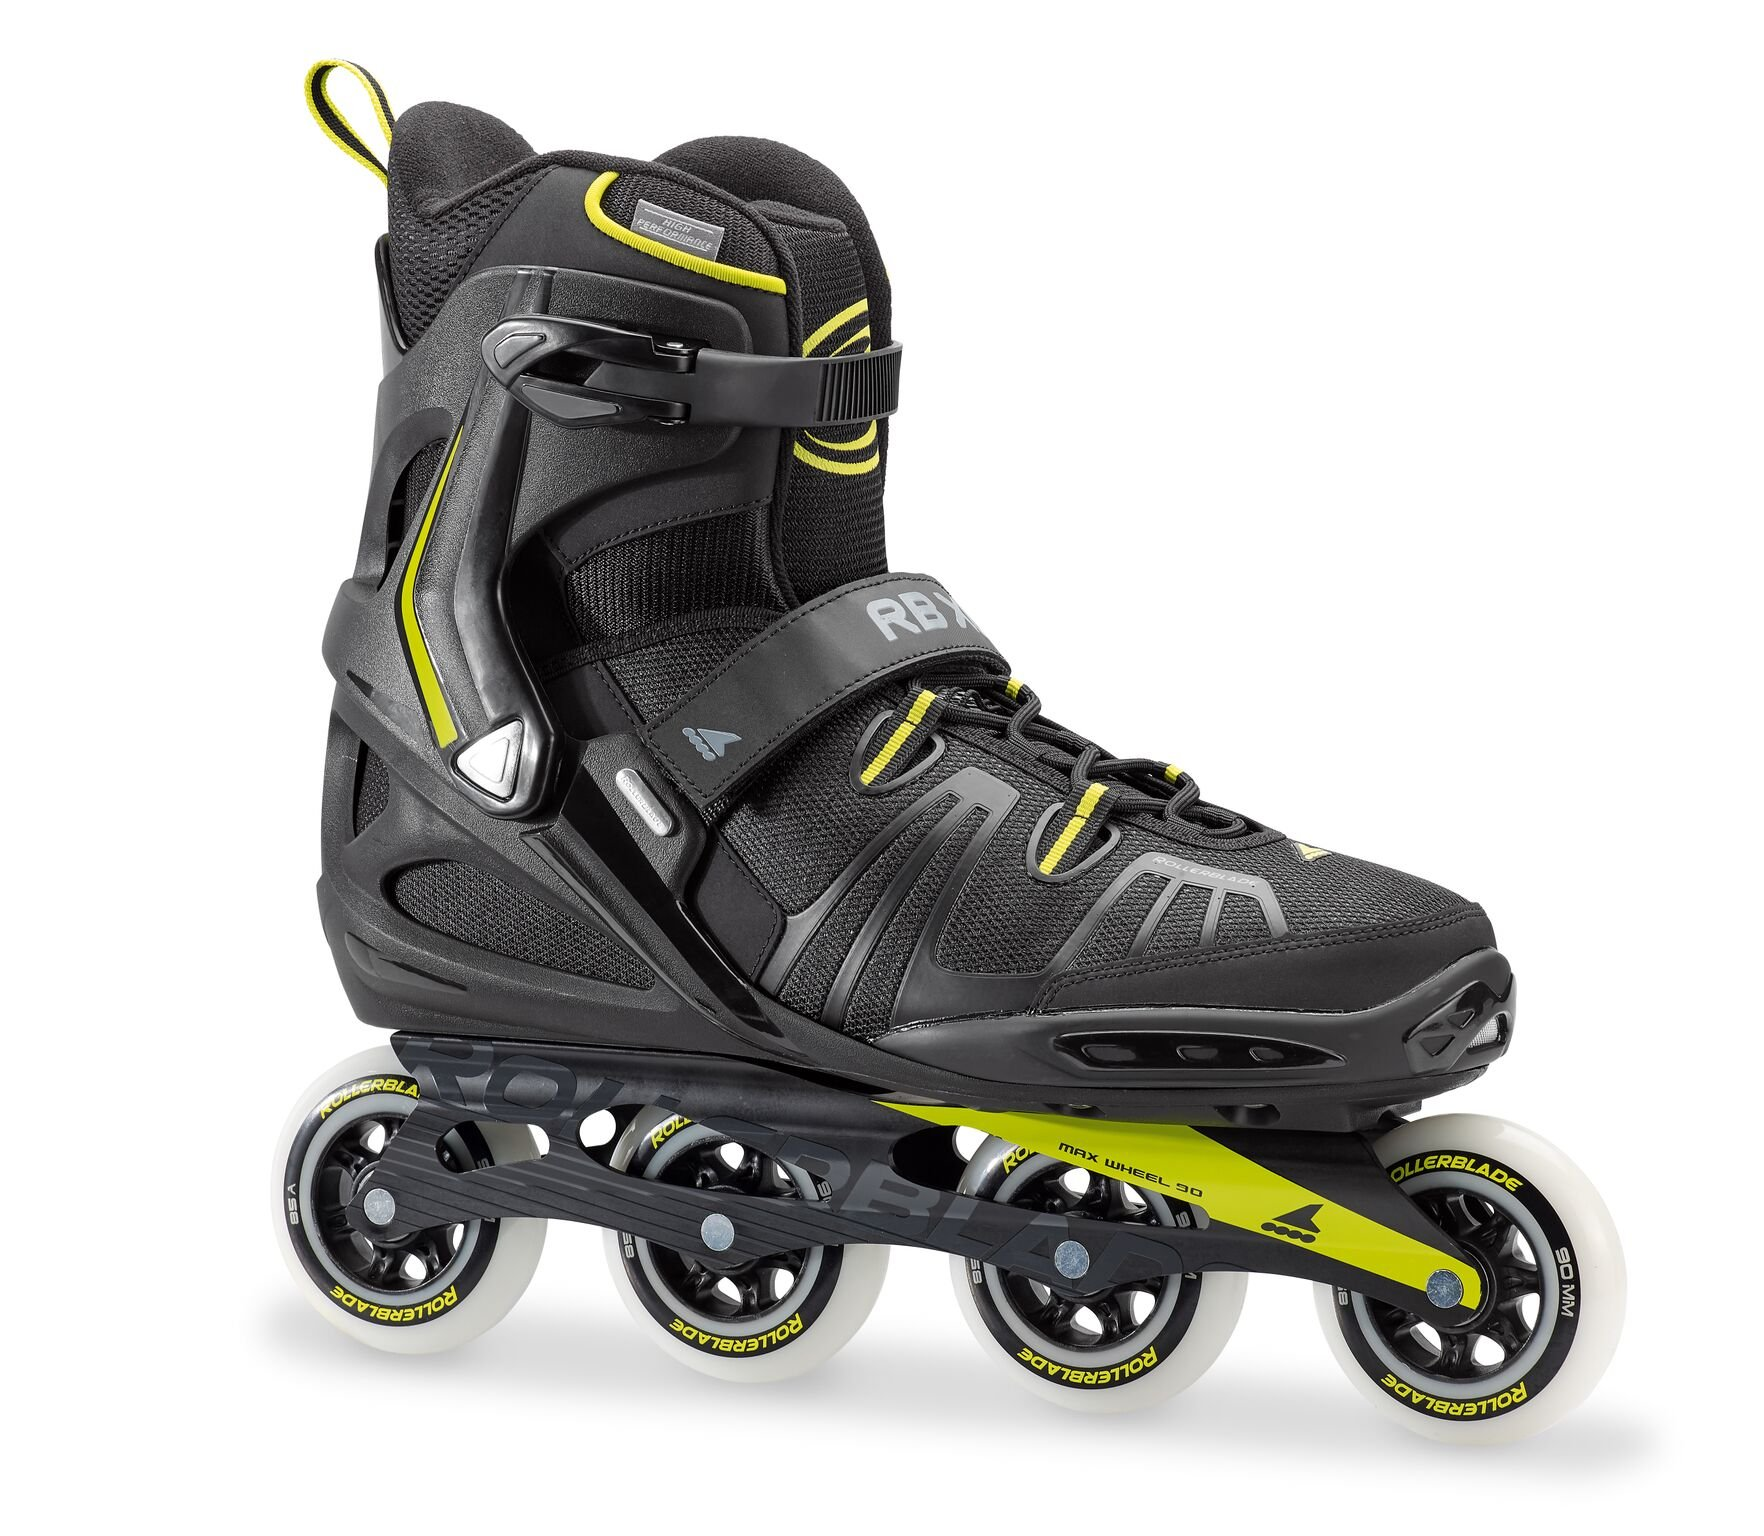 Rollerblade RB XL Men's Adult Fitness Inline Skate, Black and Lime, High Performance Inline Skates by Rollerblade